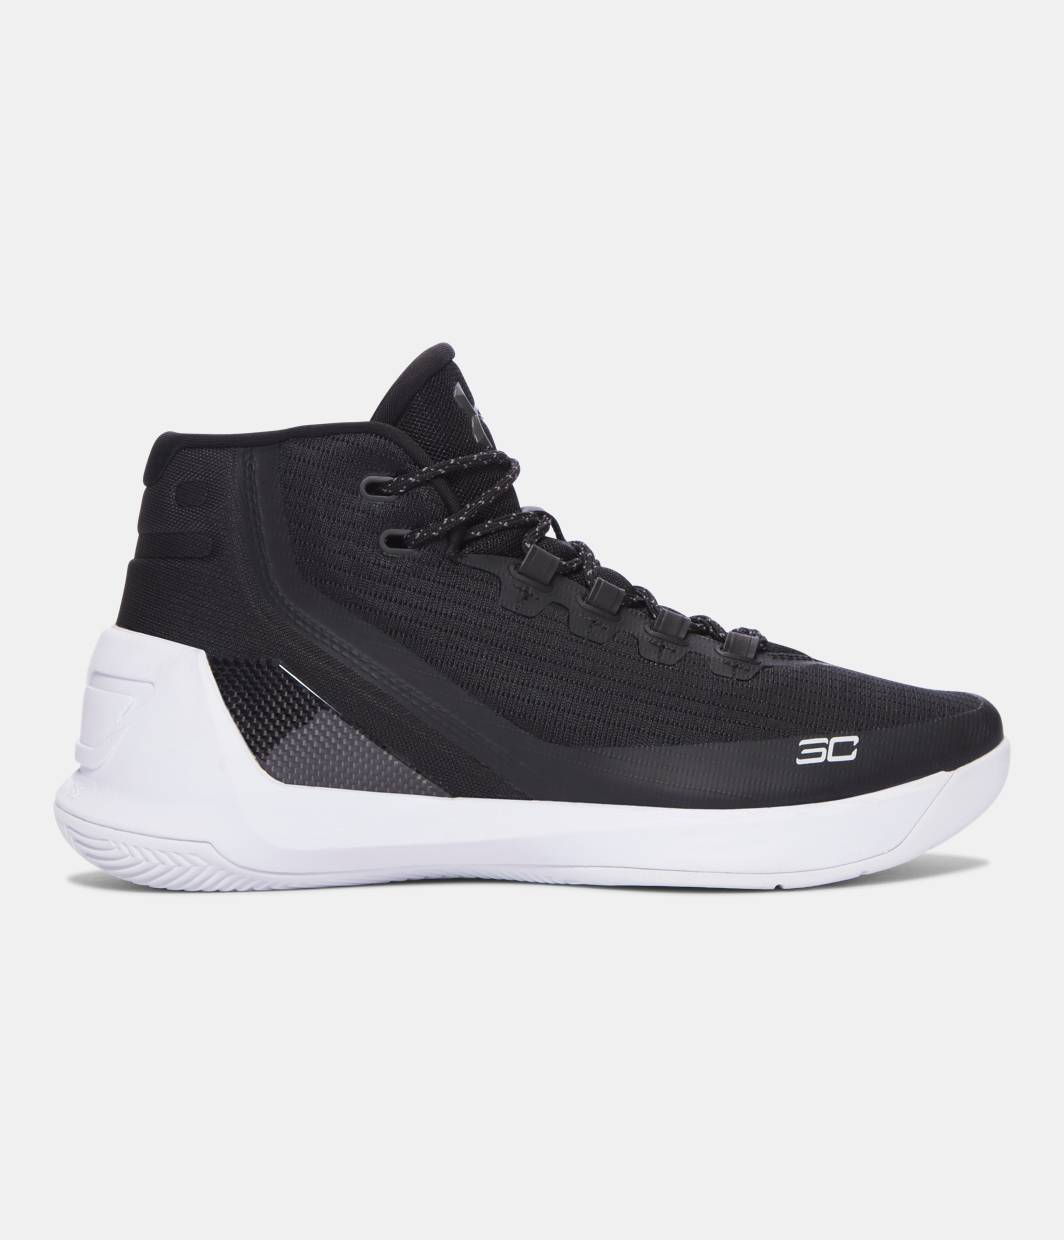 Cheap Under Armour Shoes | Dicks Under Armour | Under Armour Hoodie Clearance